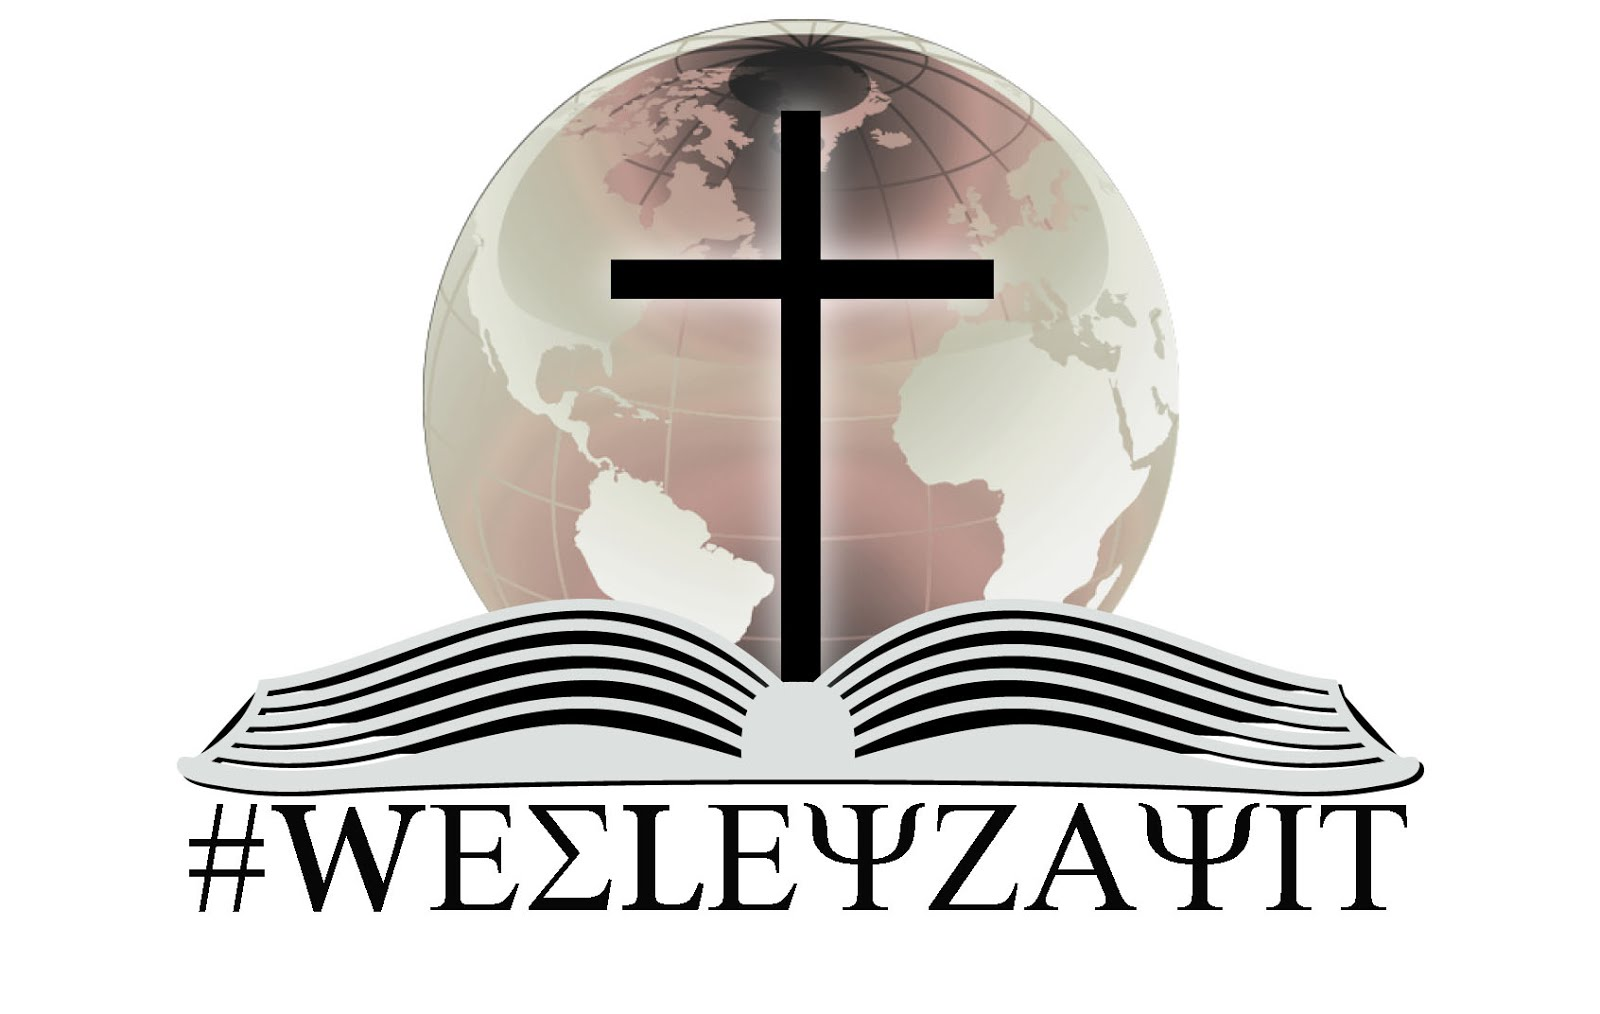 WESLEY ZAYIT - SERVO DO ETERNO